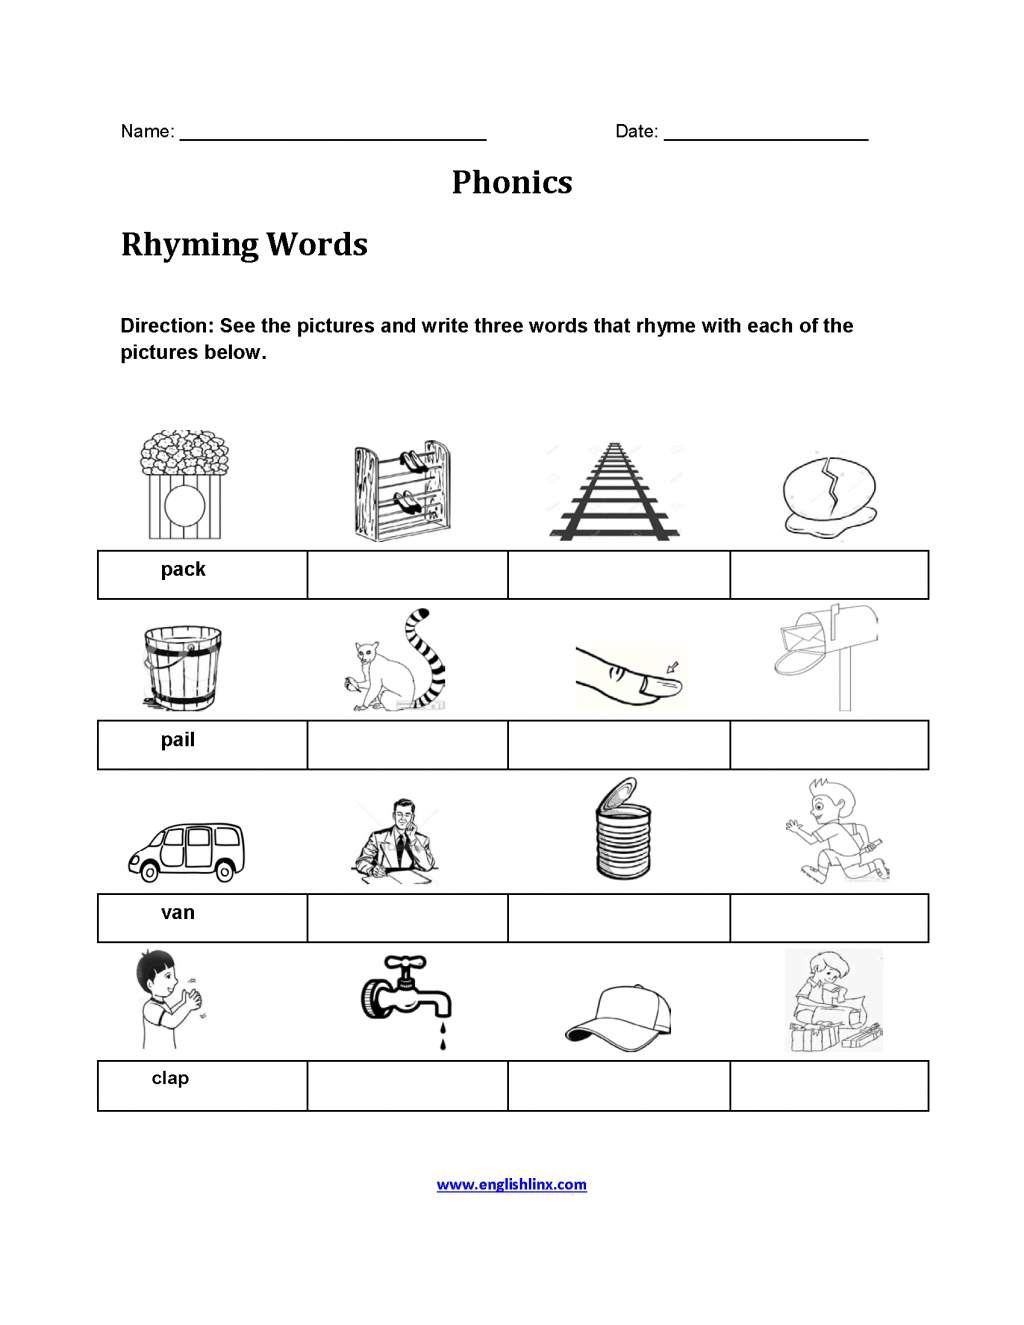 Phonics Worksheets For Adults